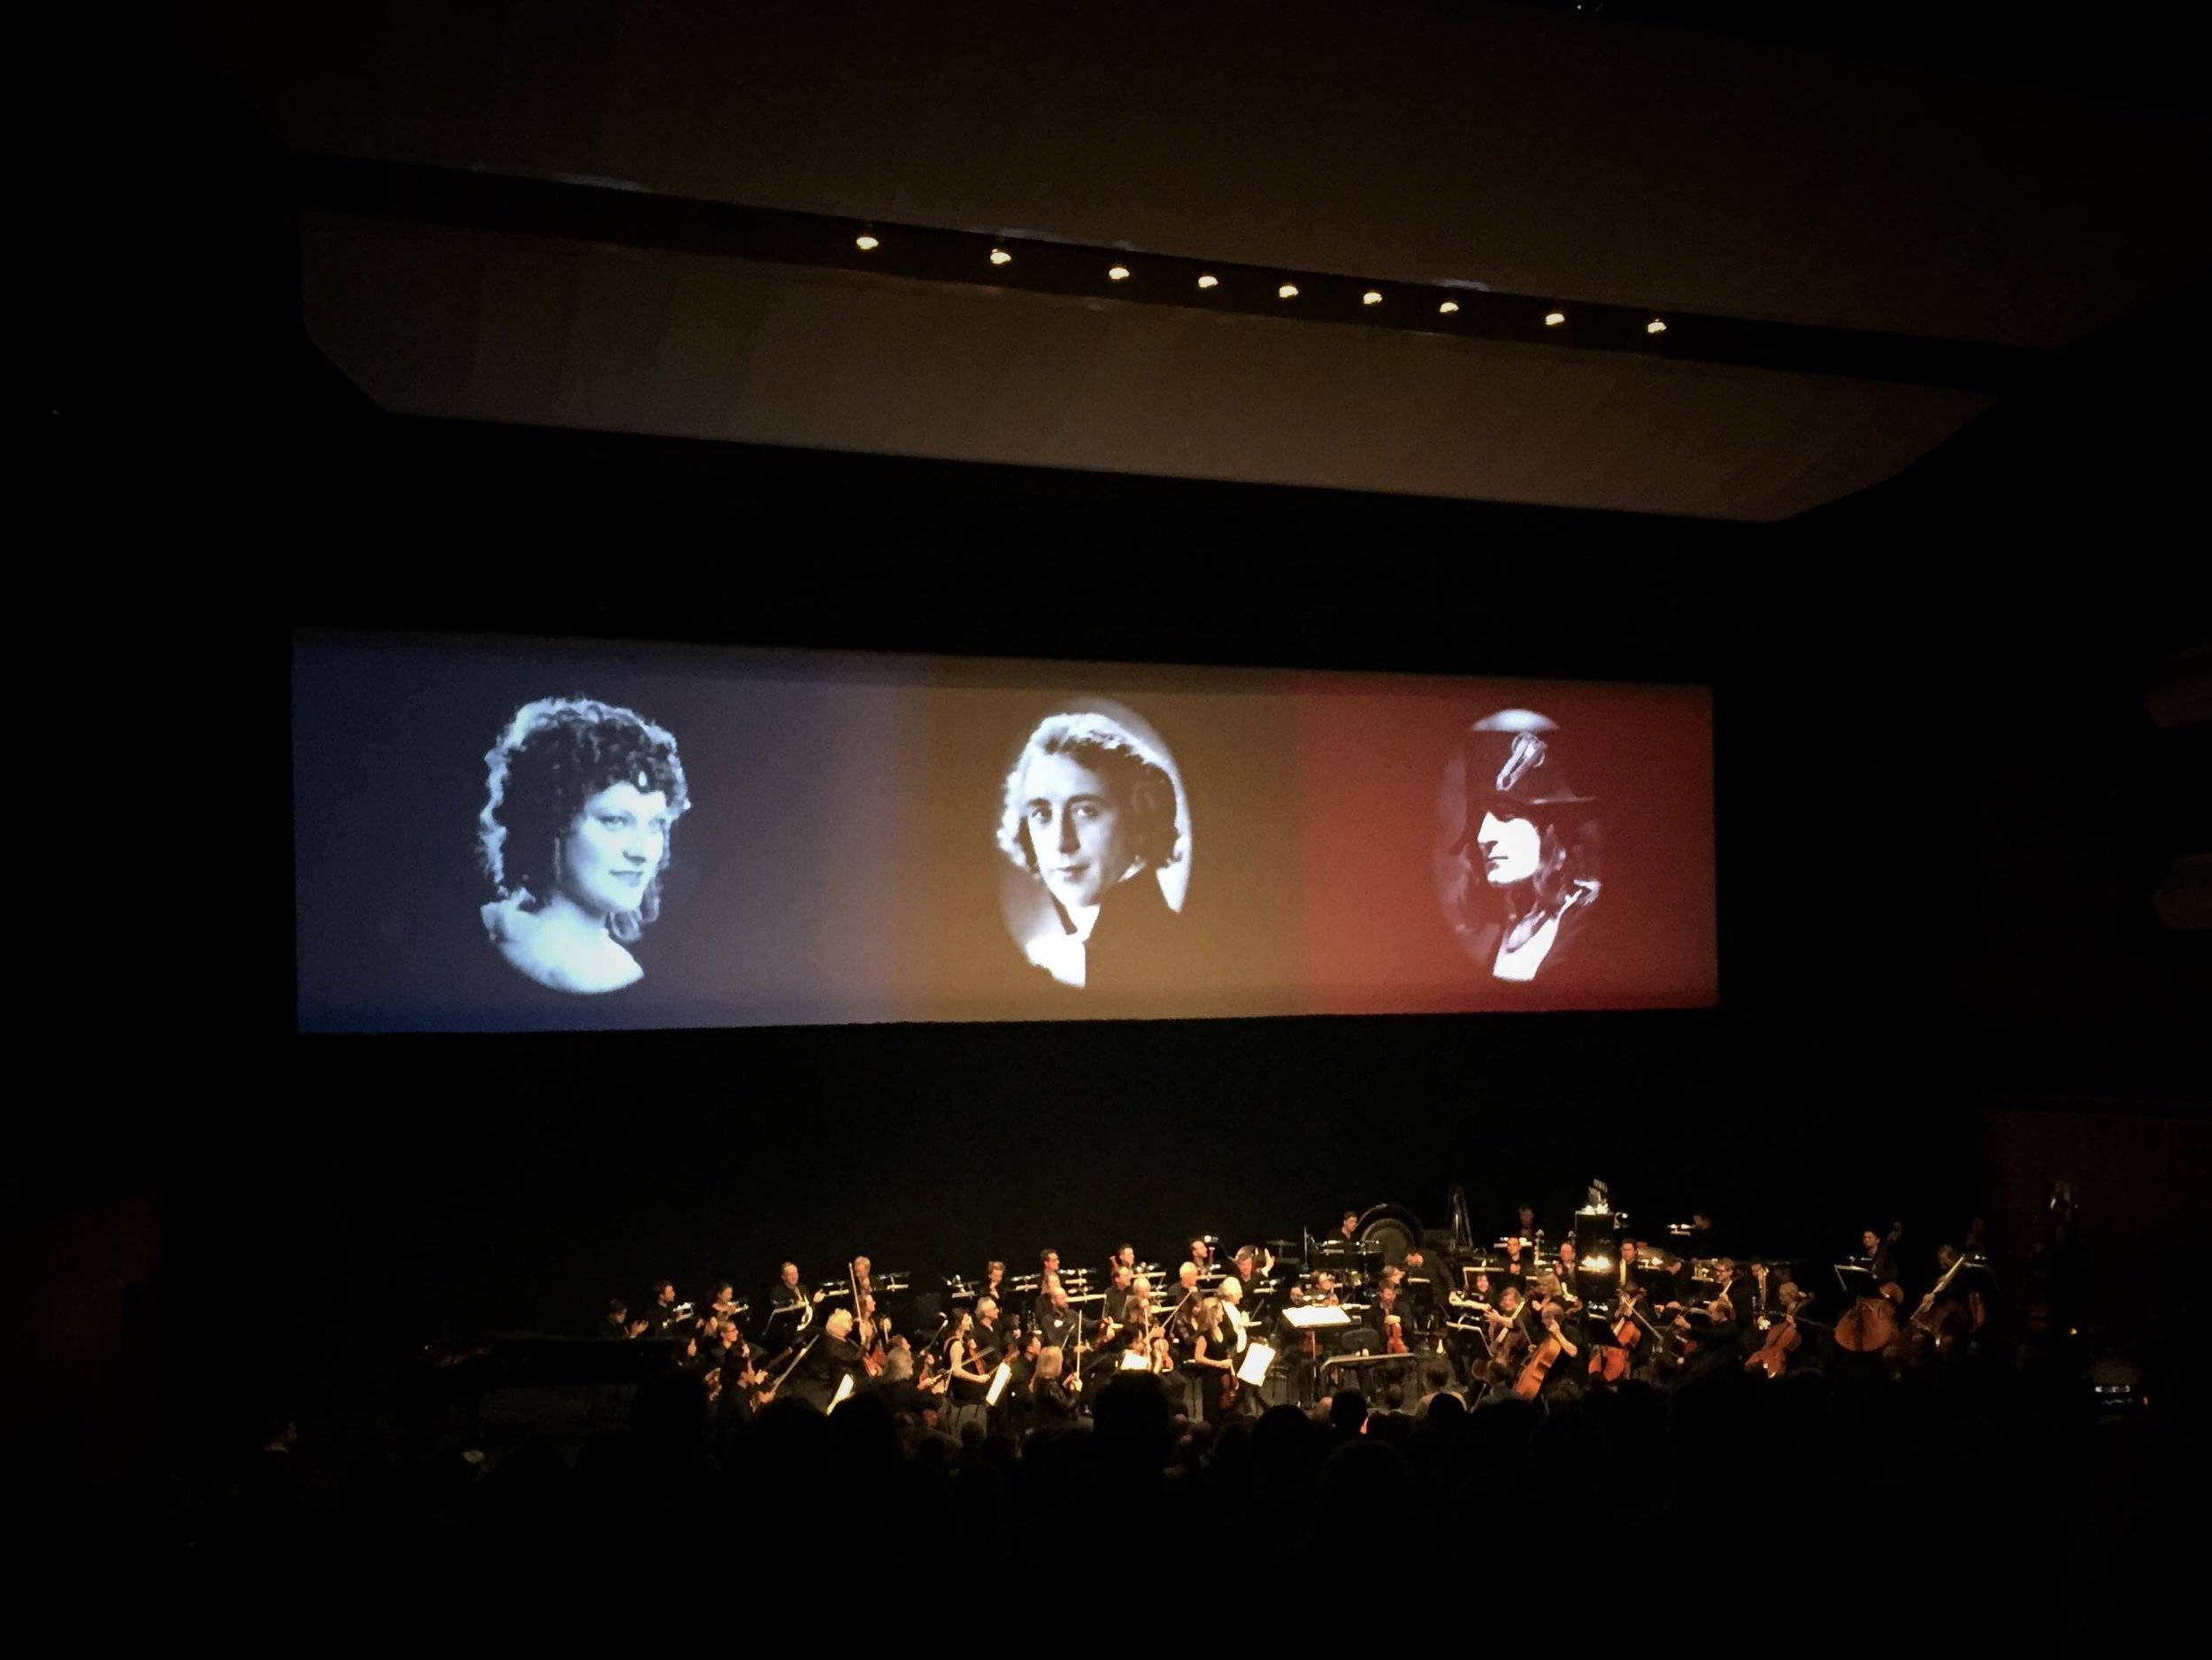 Carl Davis and the Philharmonia Orchestra celebrate the stars and director of  Napoléon at the Royal Festival Hall on 6th November 2016.